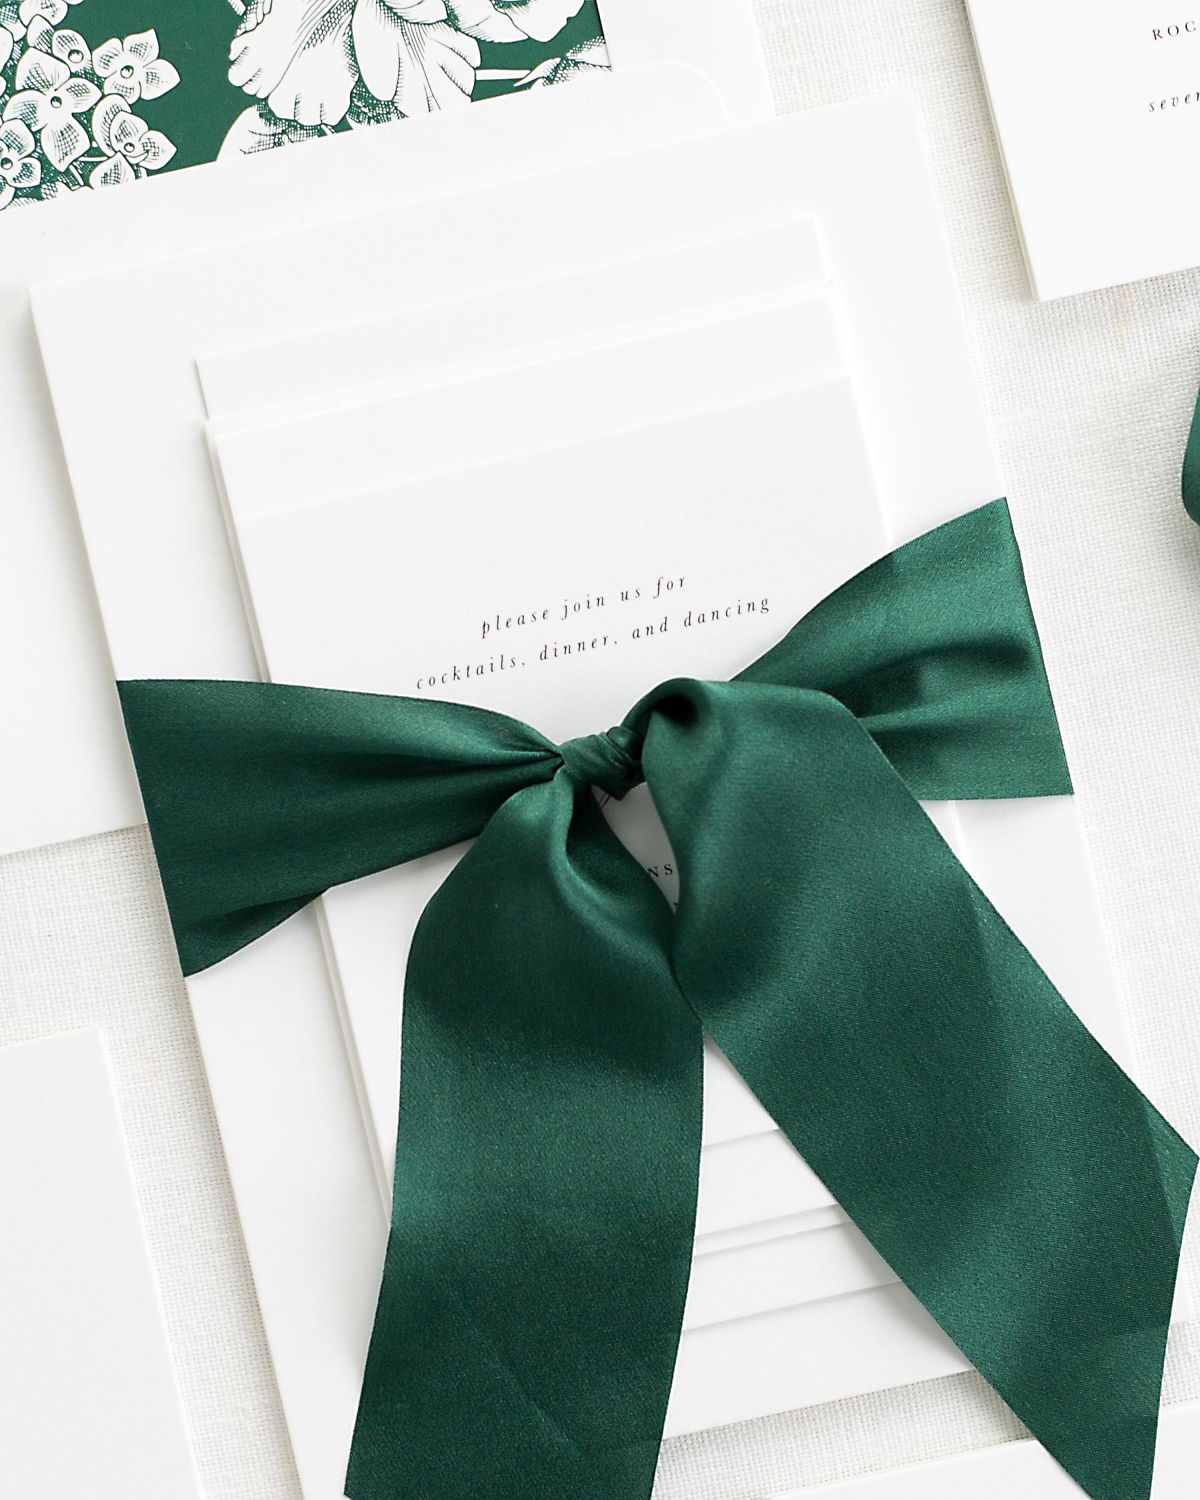 Complete Wedding Stationery Suite with Dark Green Ribbon and Enclosures